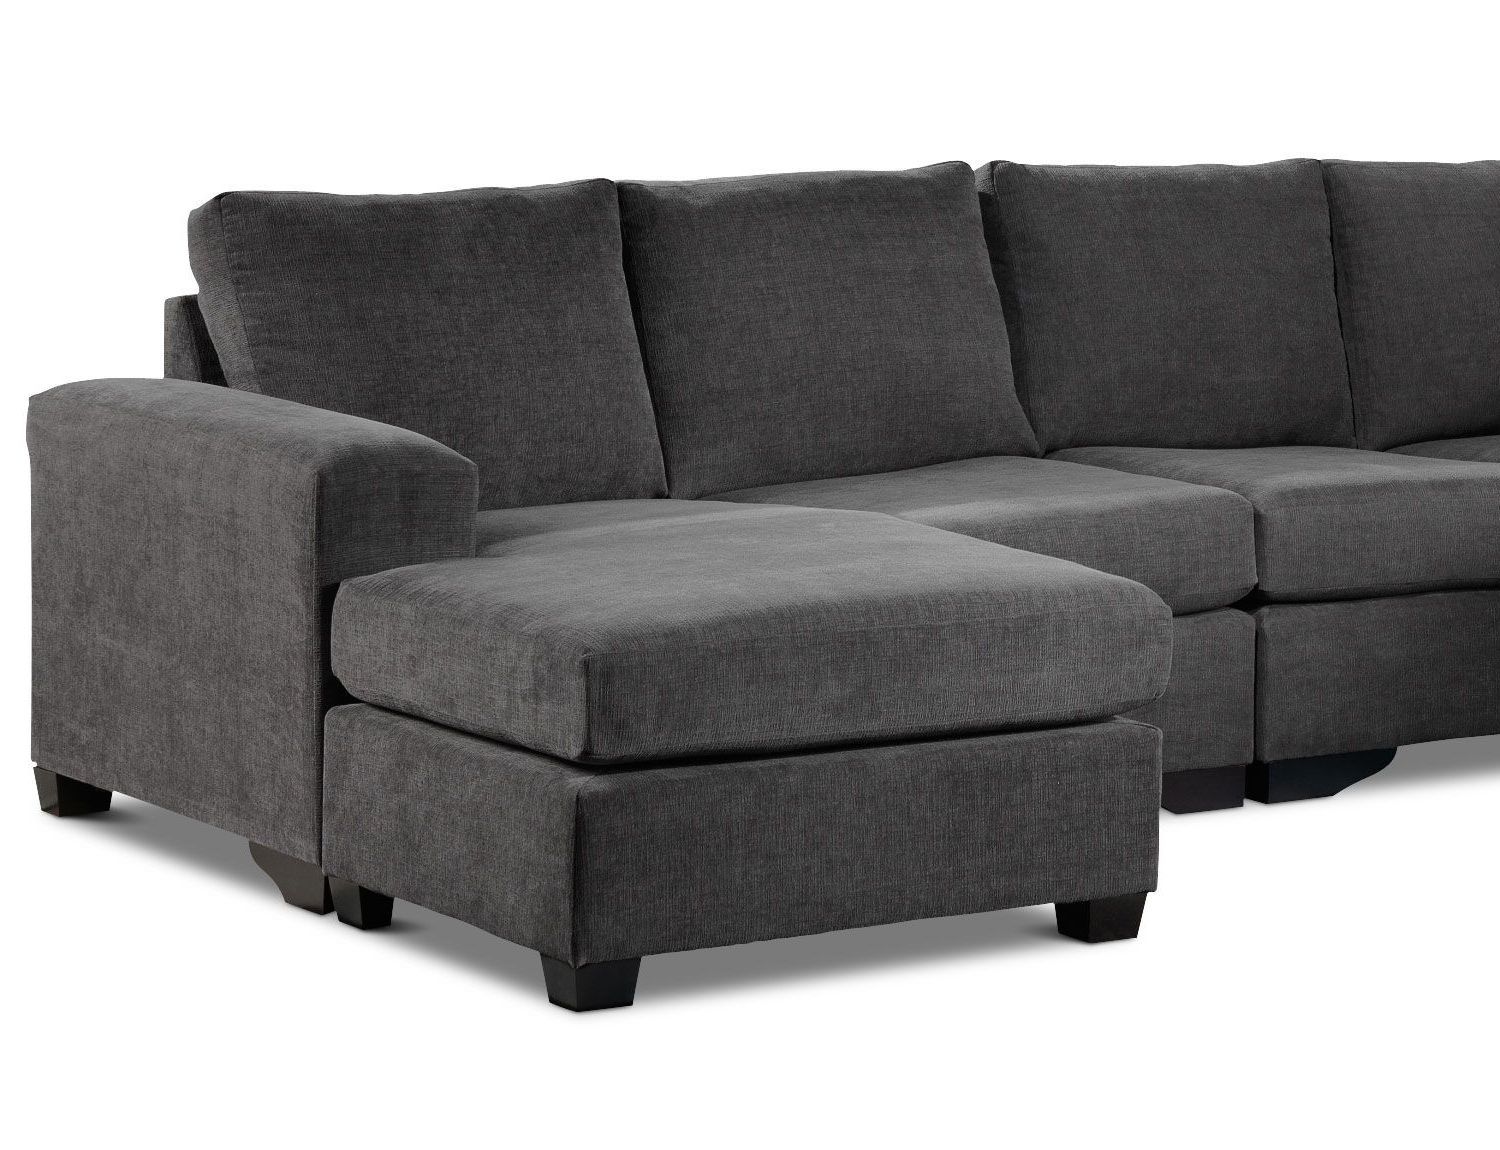 Well Known Leons Sectional Sofas Inside Trudy Upholstery 4 Pc. Sectional – Leon's, $1, (View 14 of 15)